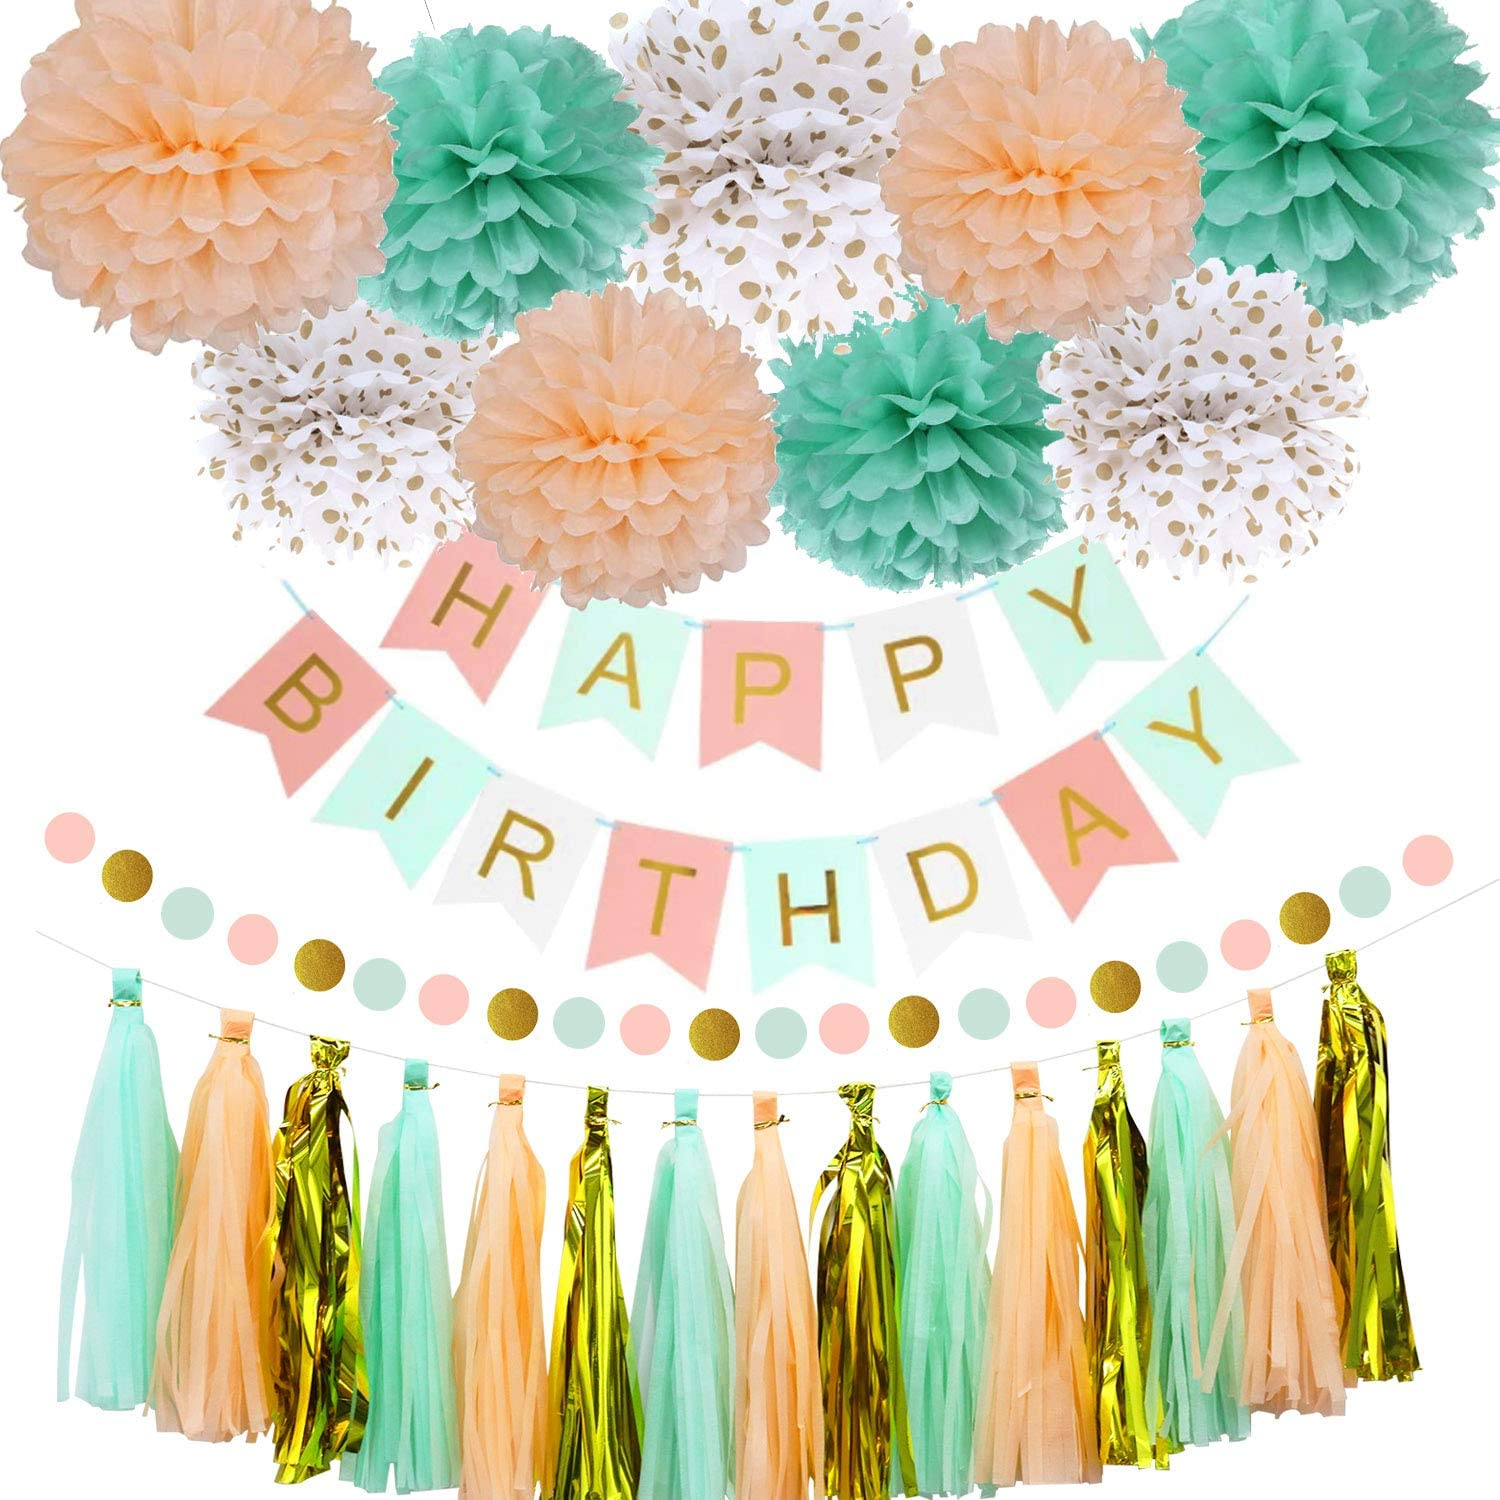 OuMuaMua Mint Peach Birthday Party Decorations for Women Grils, Happy Birthday Decoration Set with Birthday Banner Pom Poms Circle Dot Garland and Tassel Garland for Women Grils Birthday Party Decor